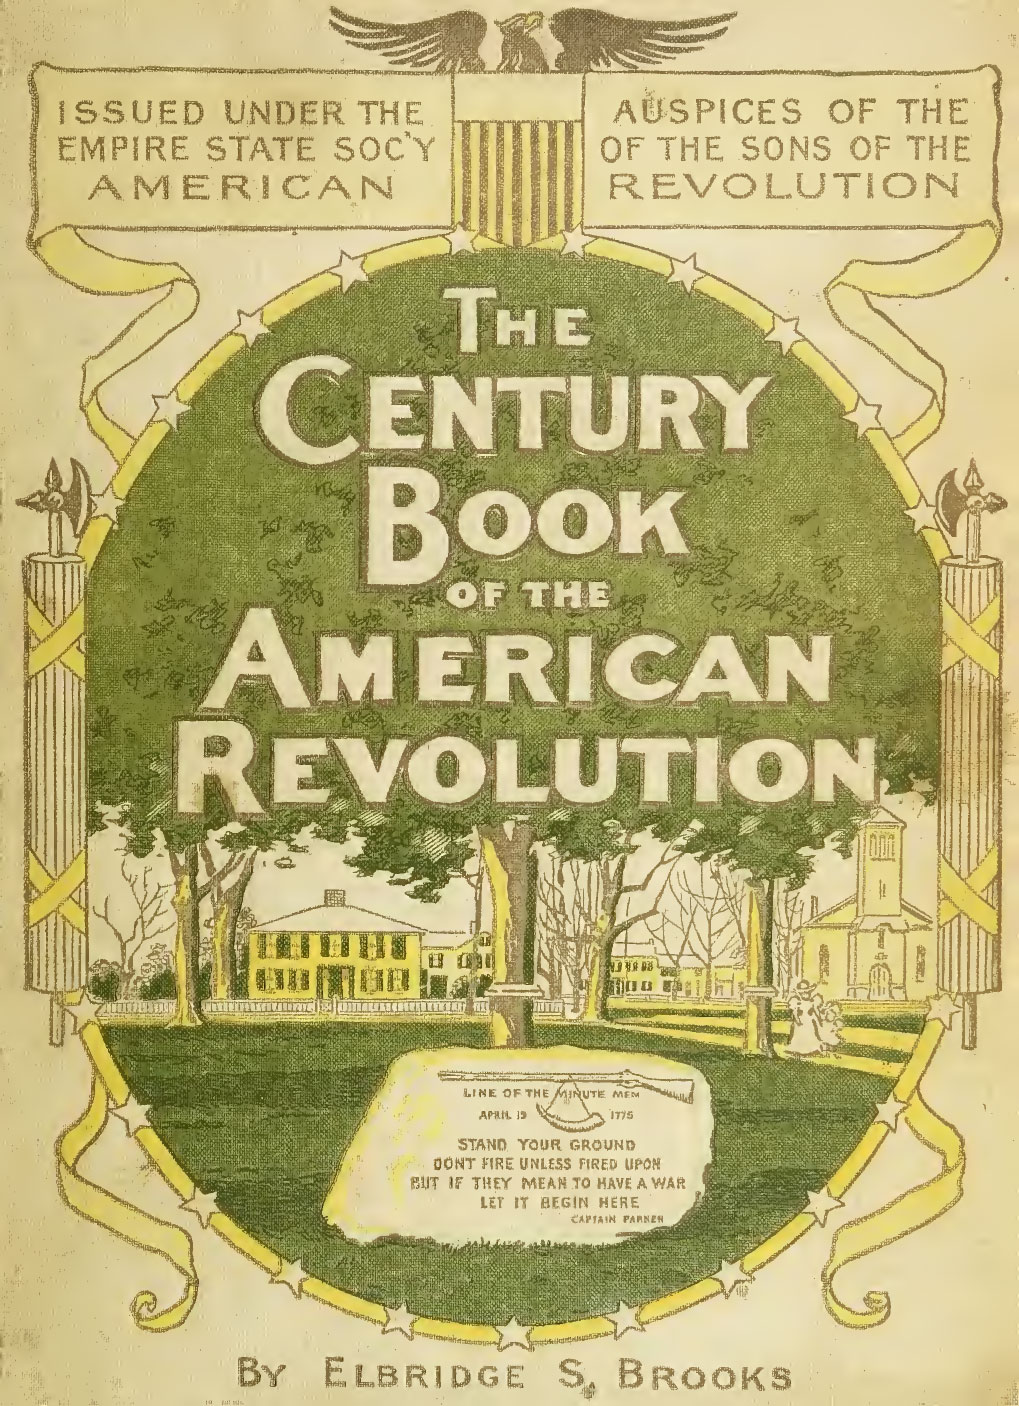 Brooks---The-Century-Book-of-the-American-Revolution-1.jpg